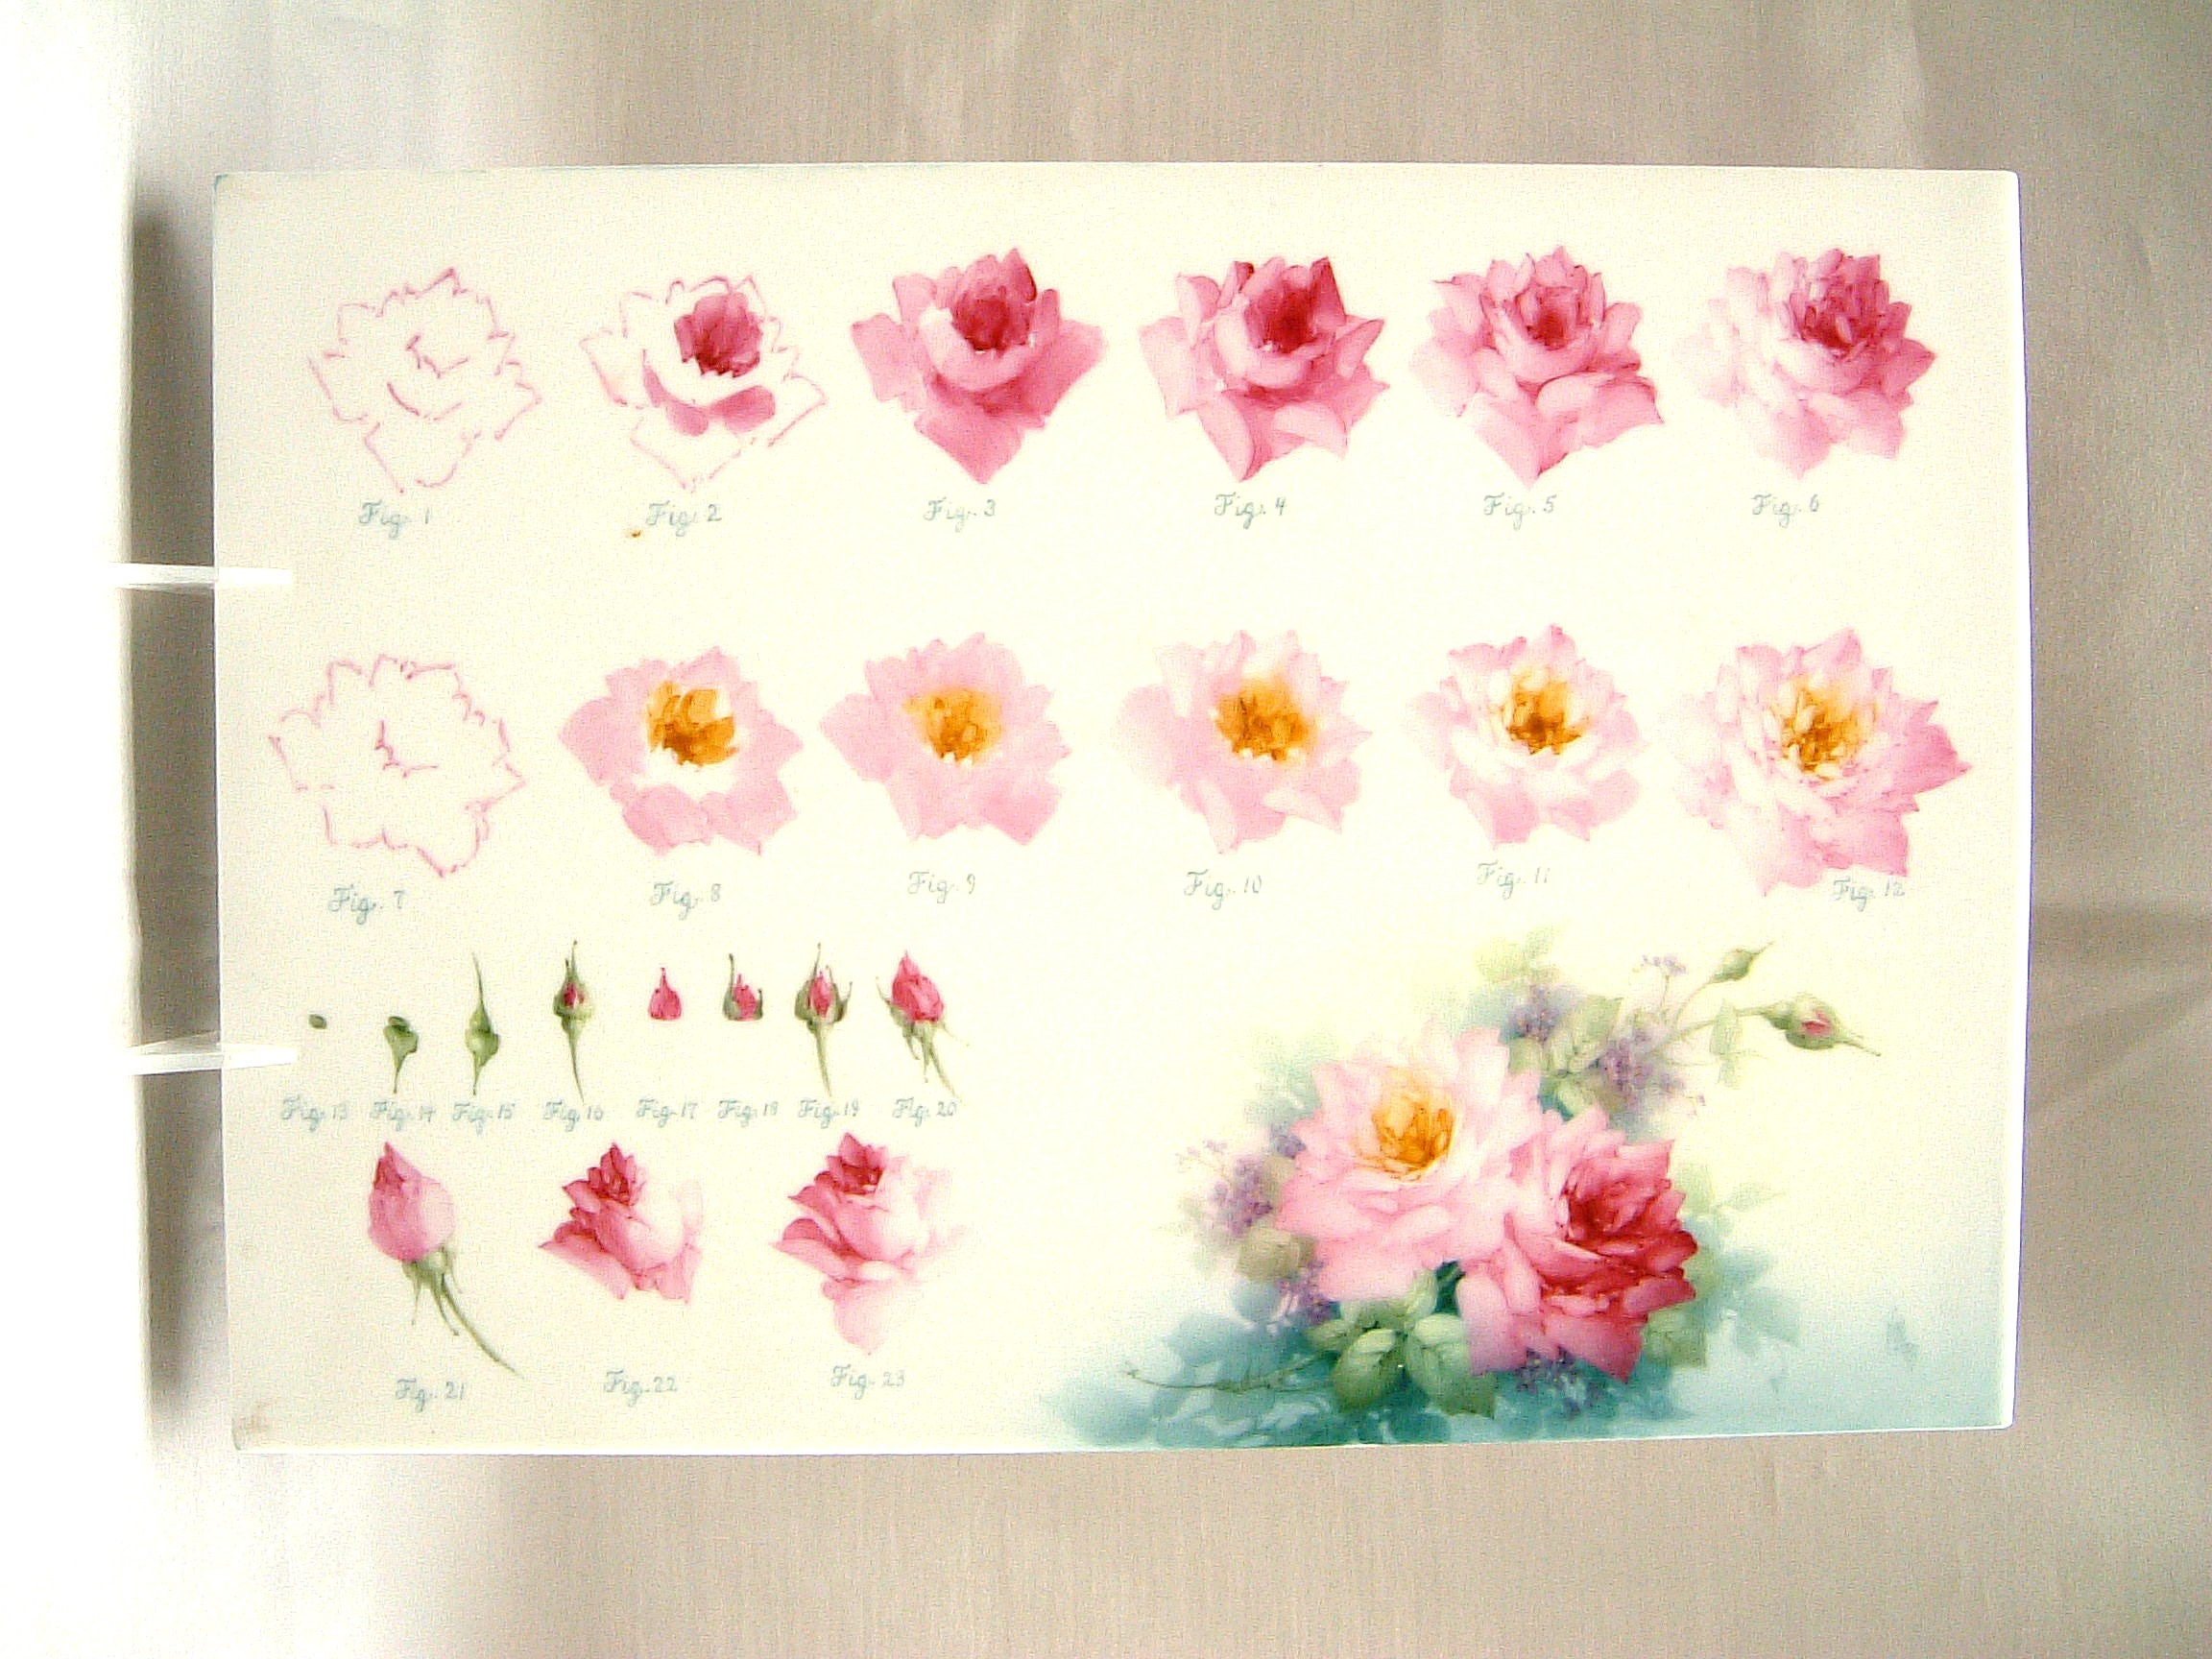 1000 images about painting tutorials and patterns on for How to paint a rose step by step